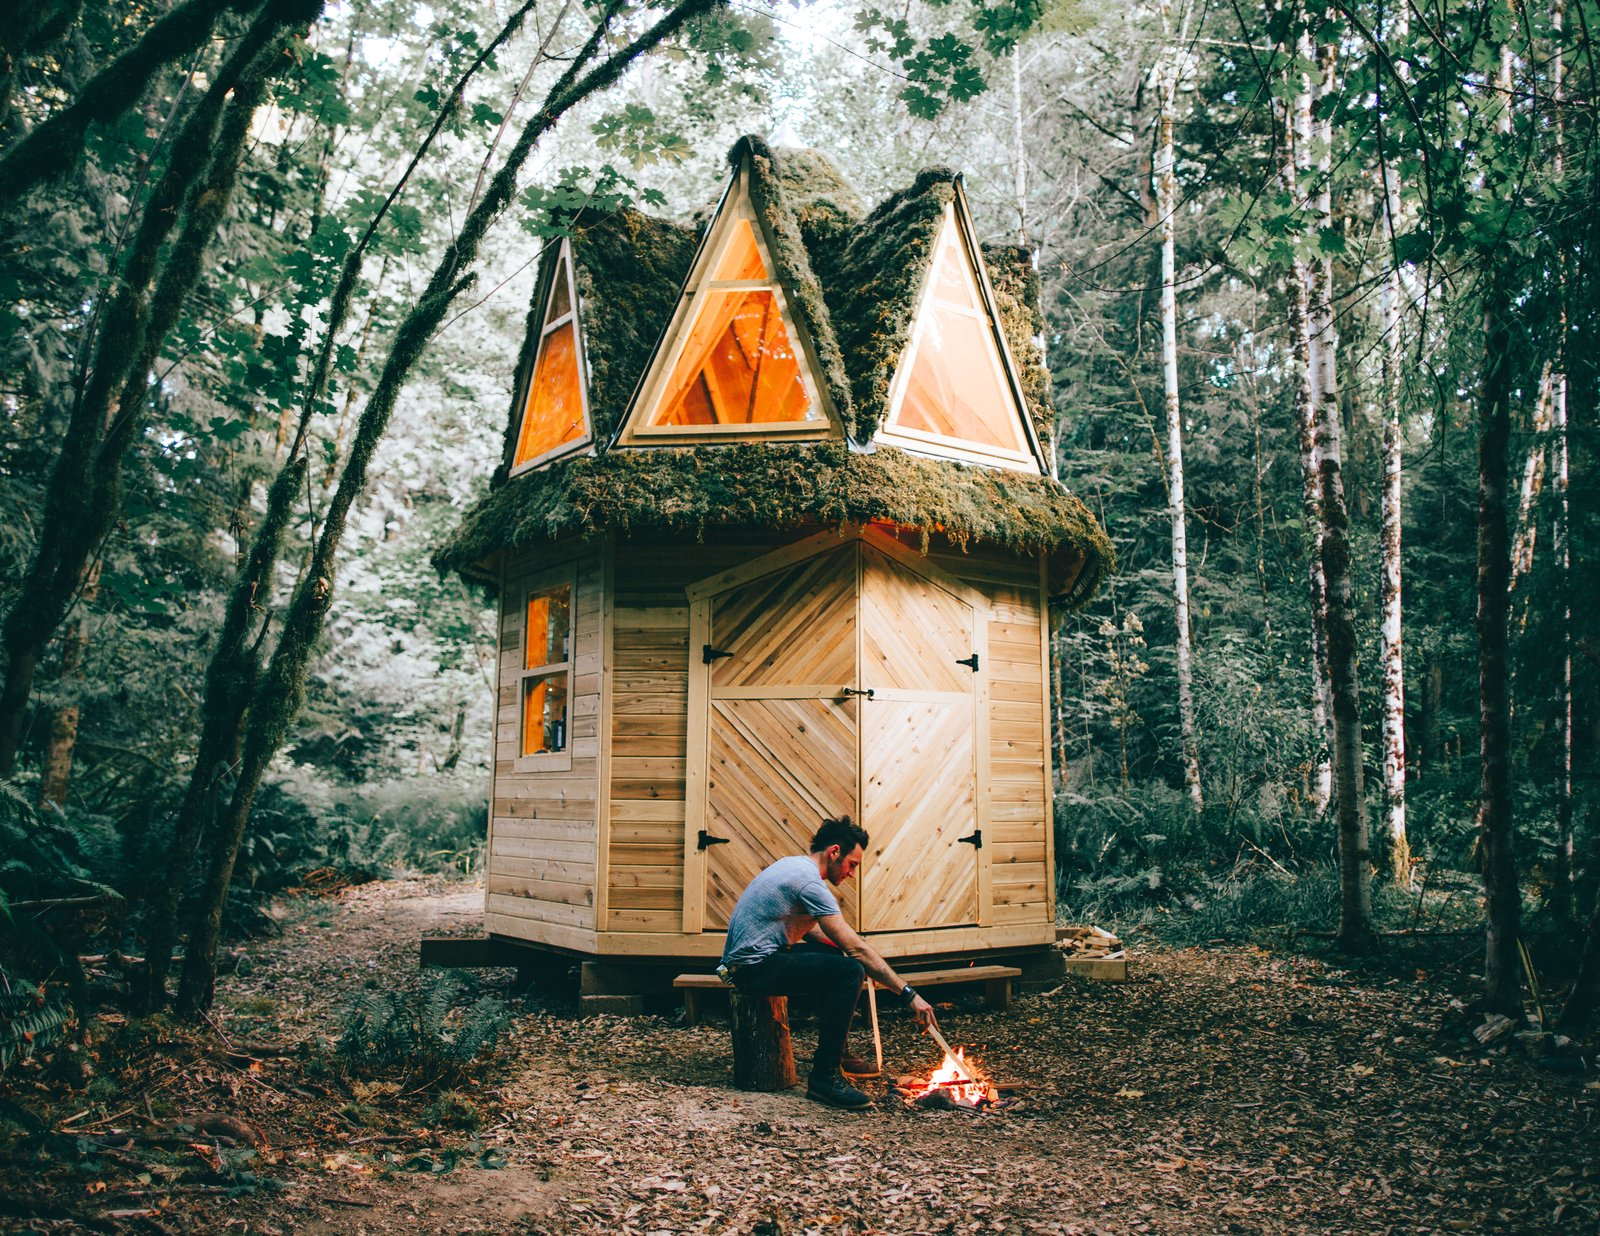 Jacob Witzling's Off-Grid Cabins Are Straight Out of a Fairy Tale